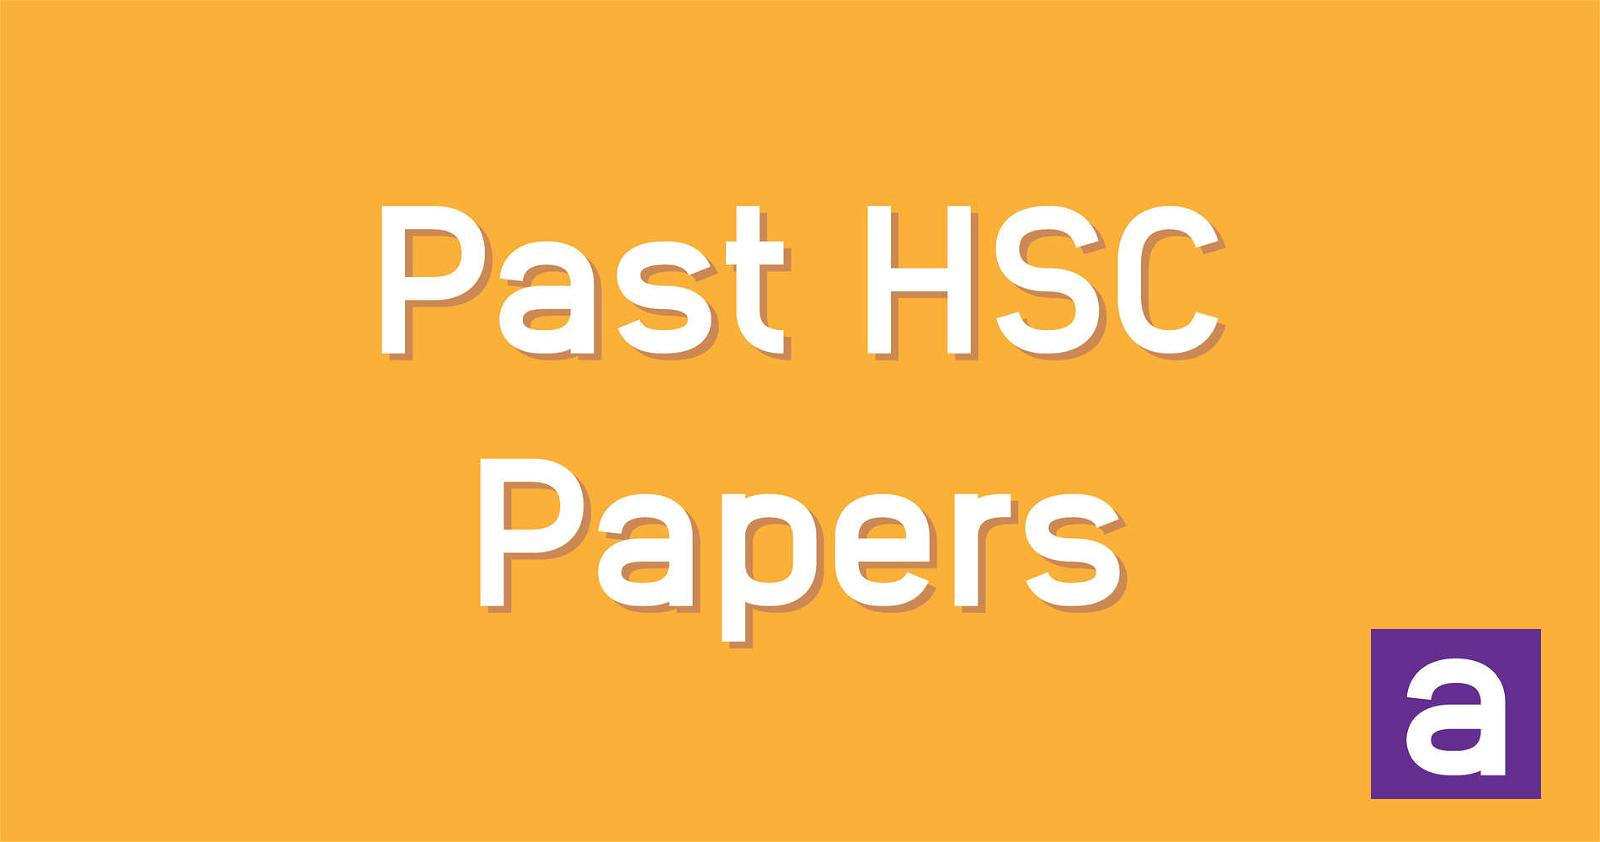 Past Technologies Hsc Papers Find Your Exam Paper Study It